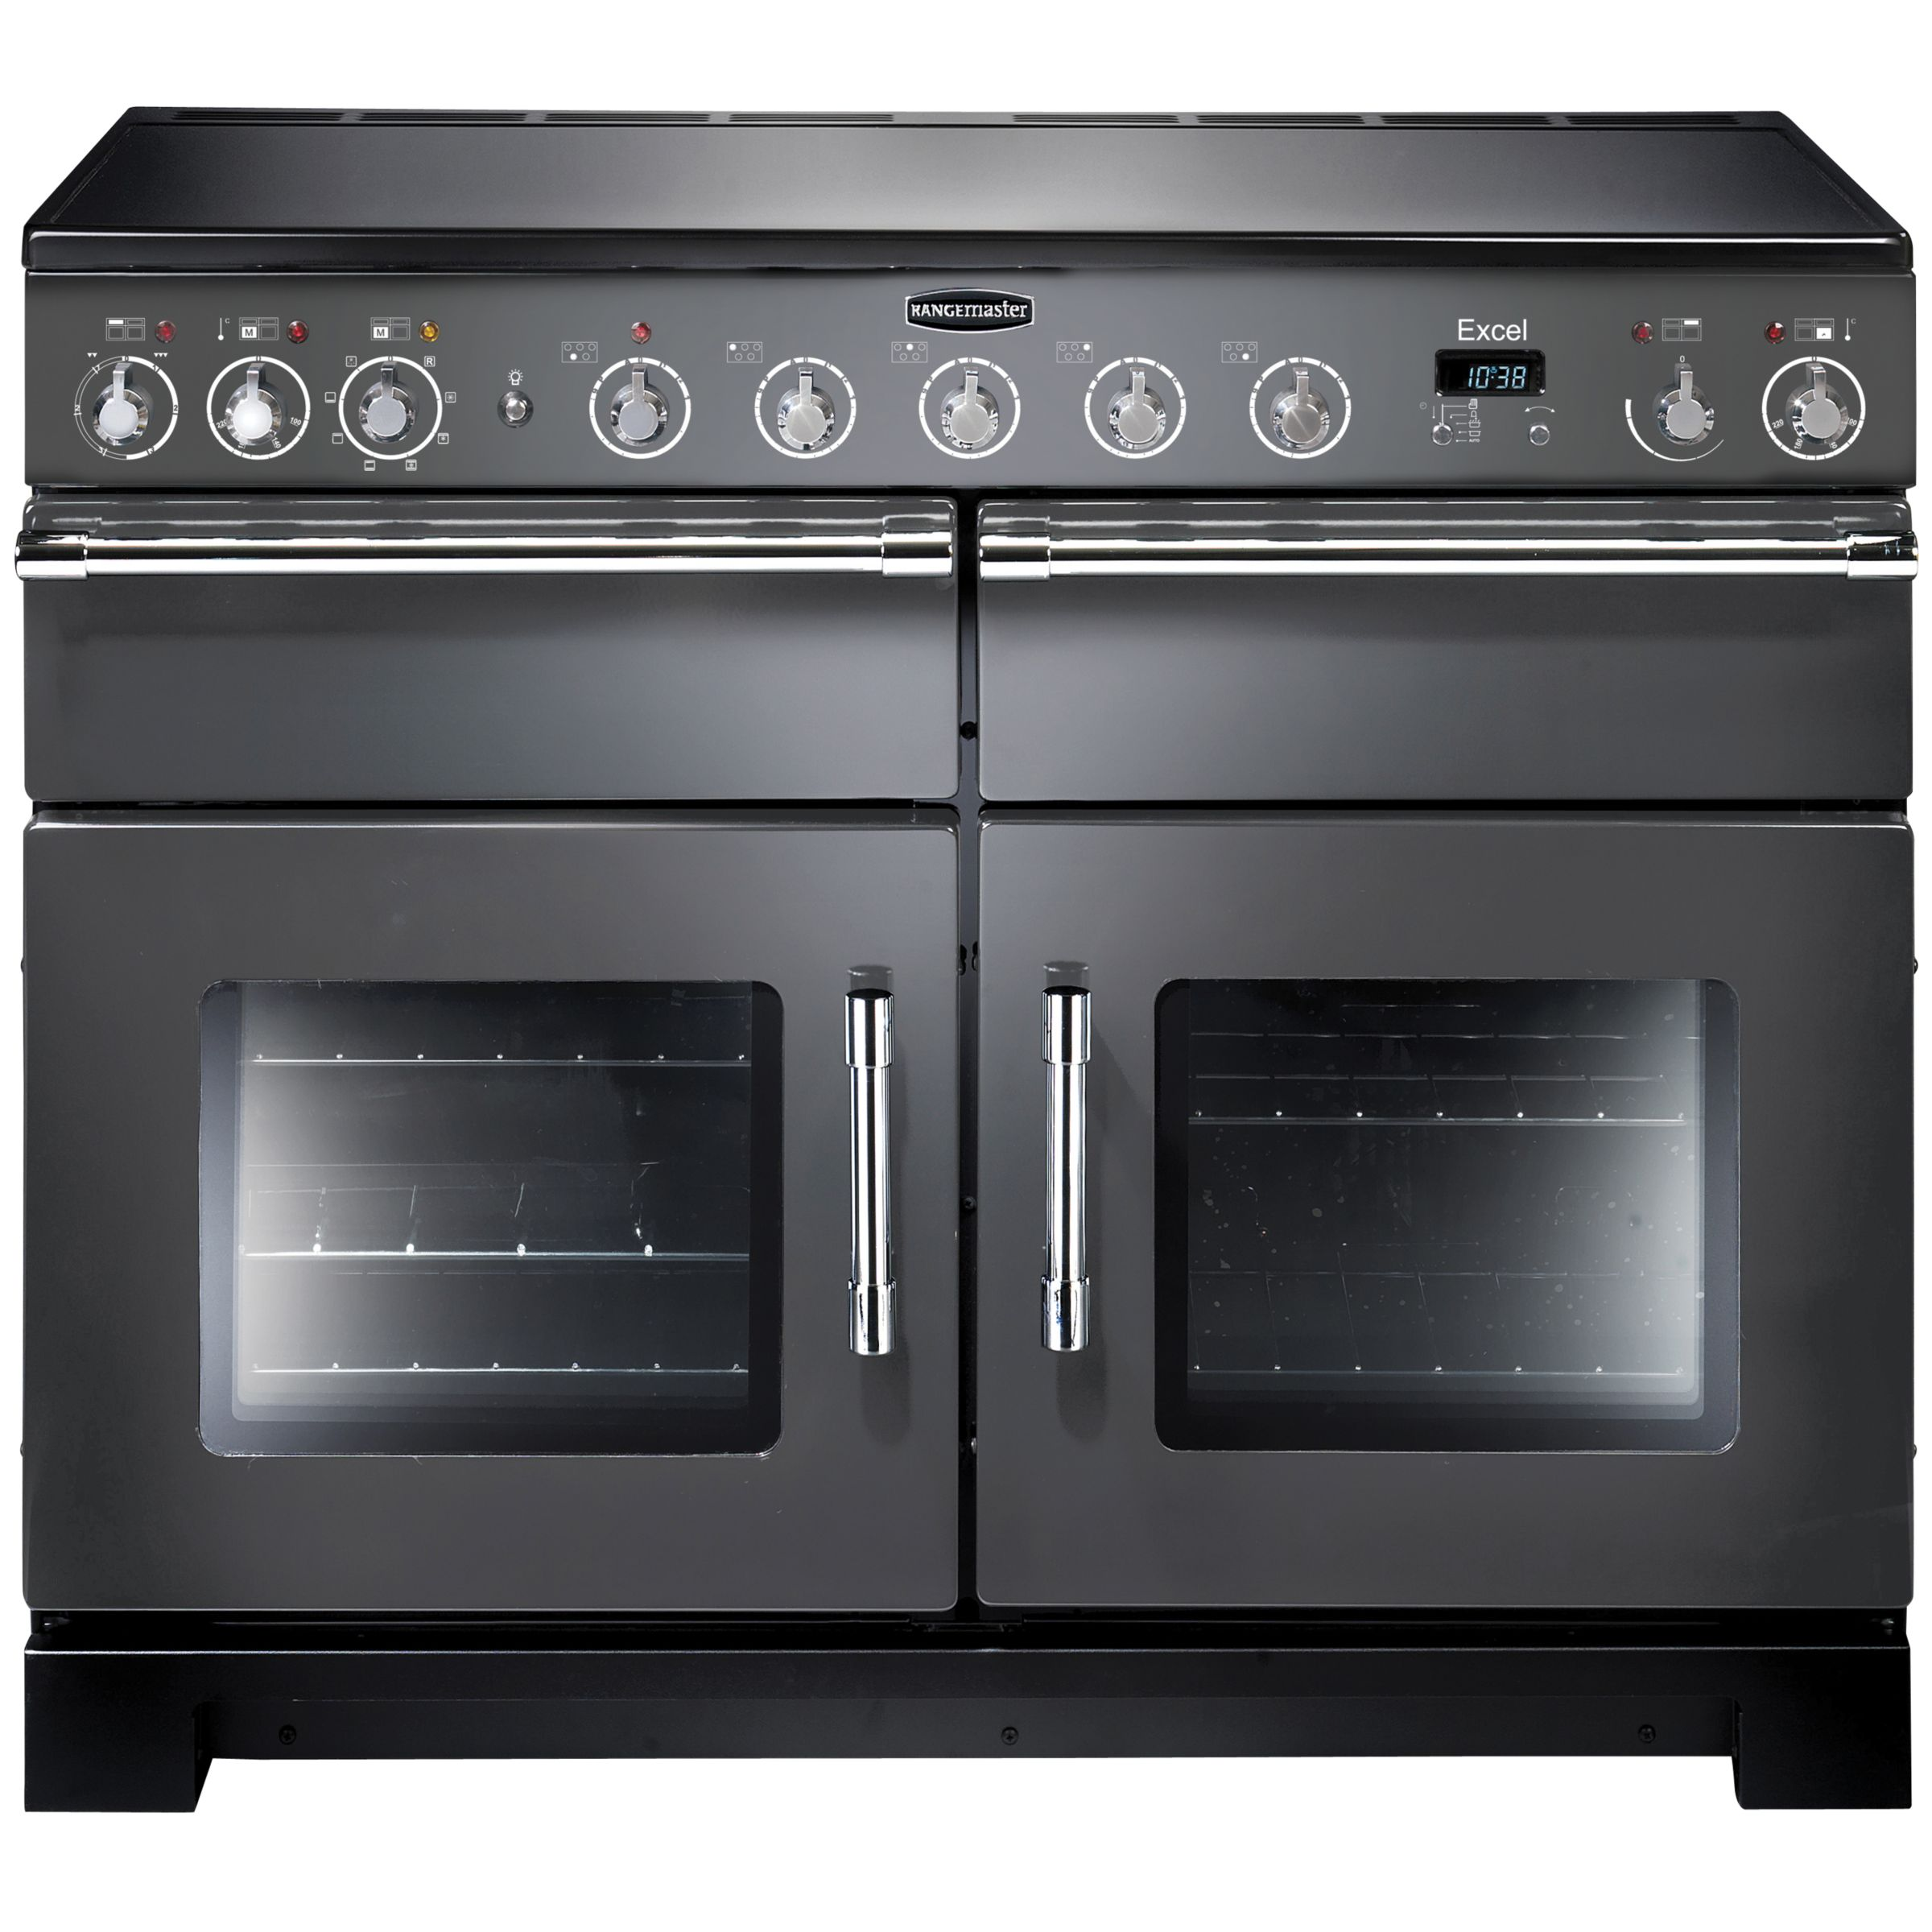 Rangemaster Rangemaster Excel 110 Electric Induction Range Cooker